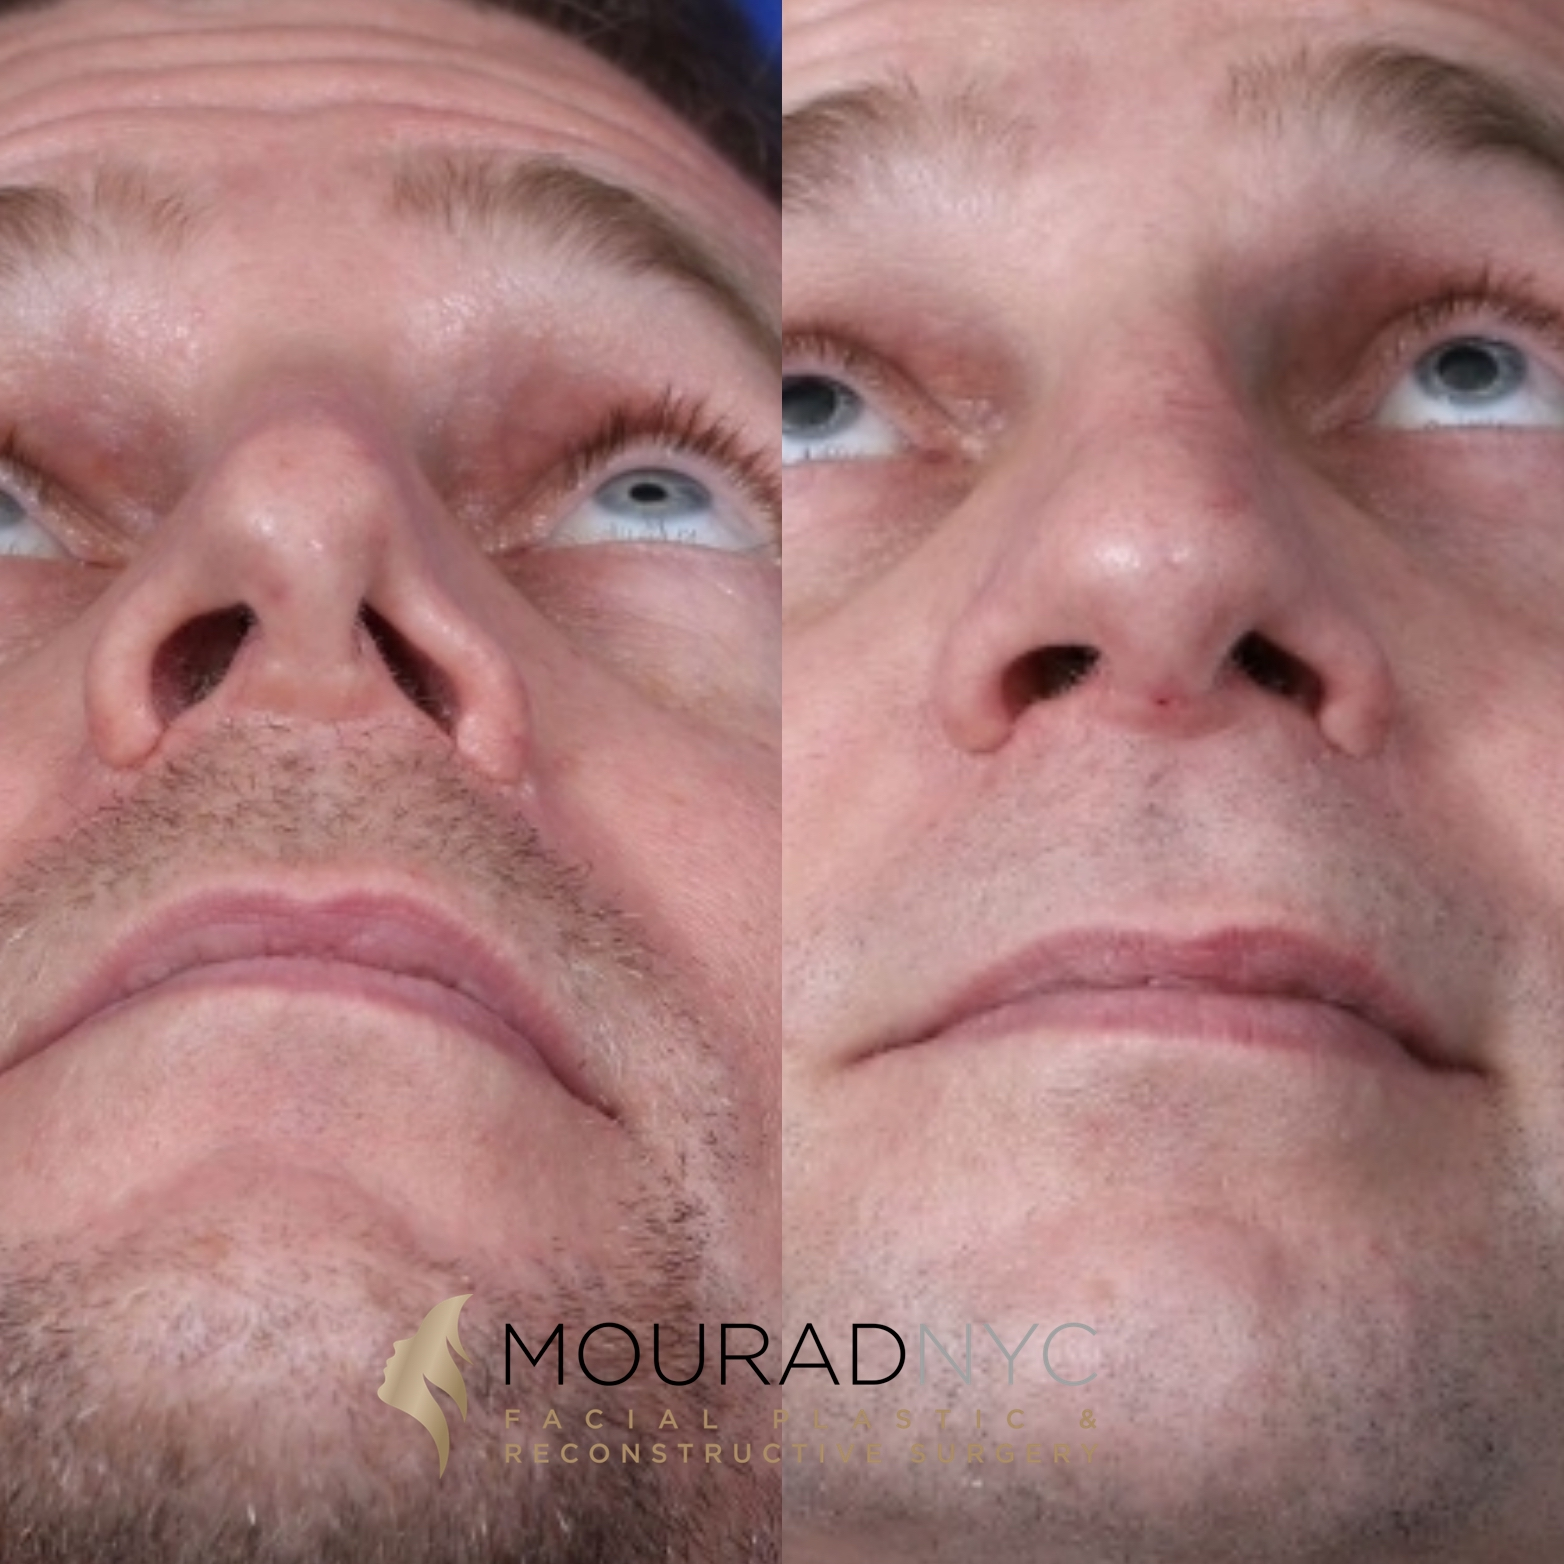 Male Revision Rhinoplasty Before and After